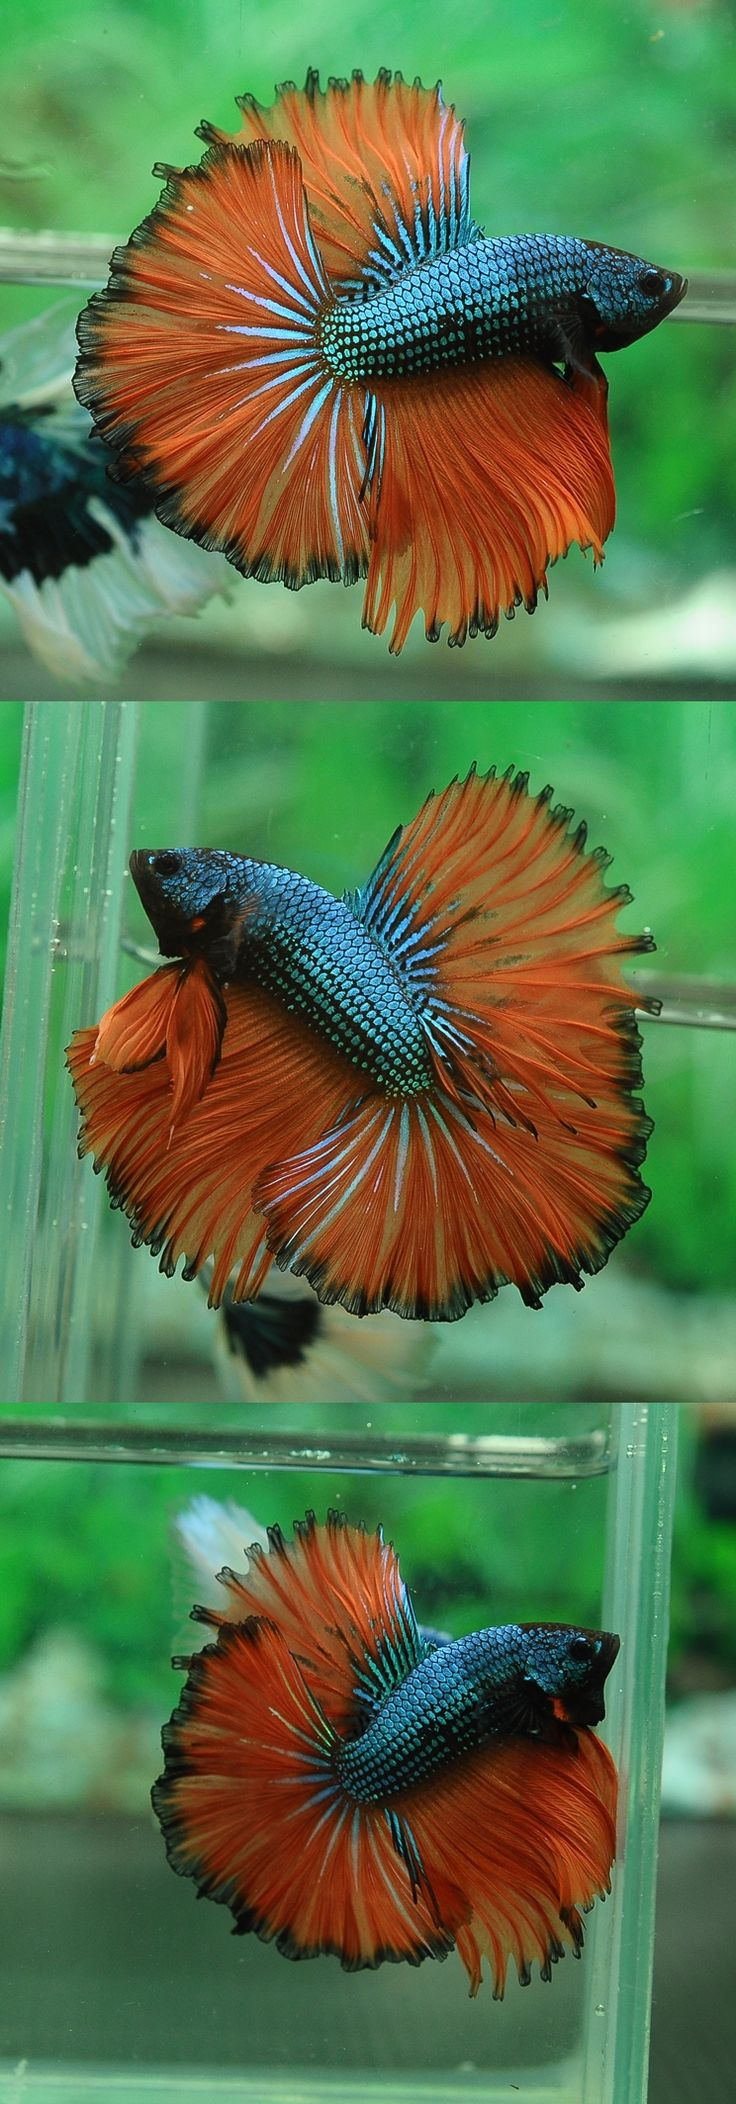 203 best Betta Fish images on Pinterest | Siamese fighting fish ...